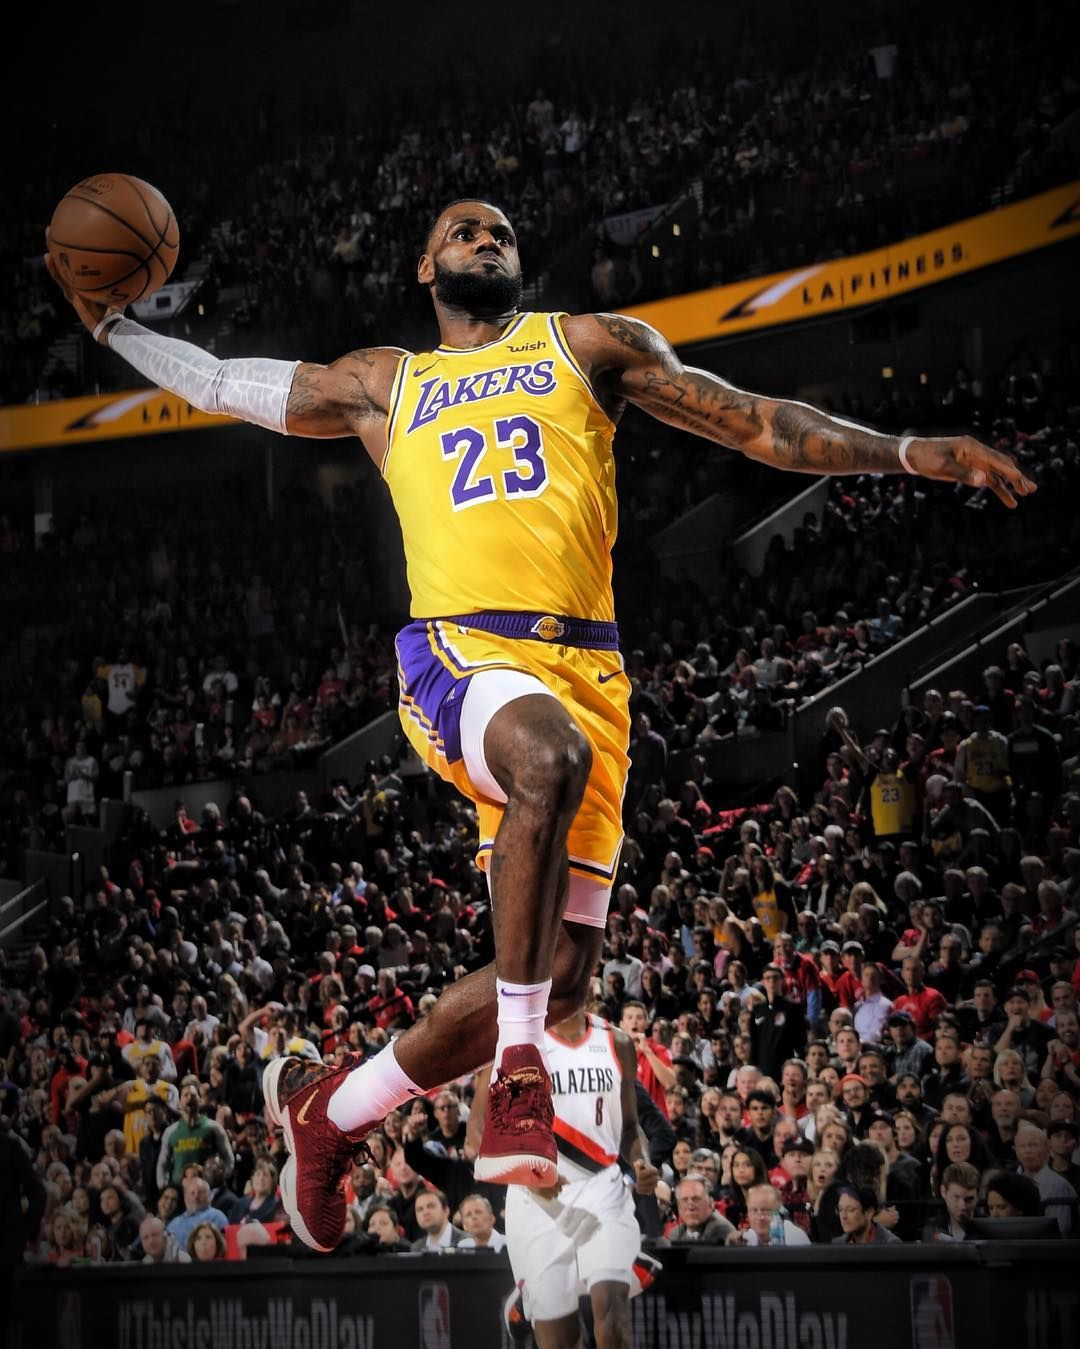 Image May Contain One Or More People People Playing Sports And Crowd Lebron James Lakers Lebron James Wallpapers Lebron James